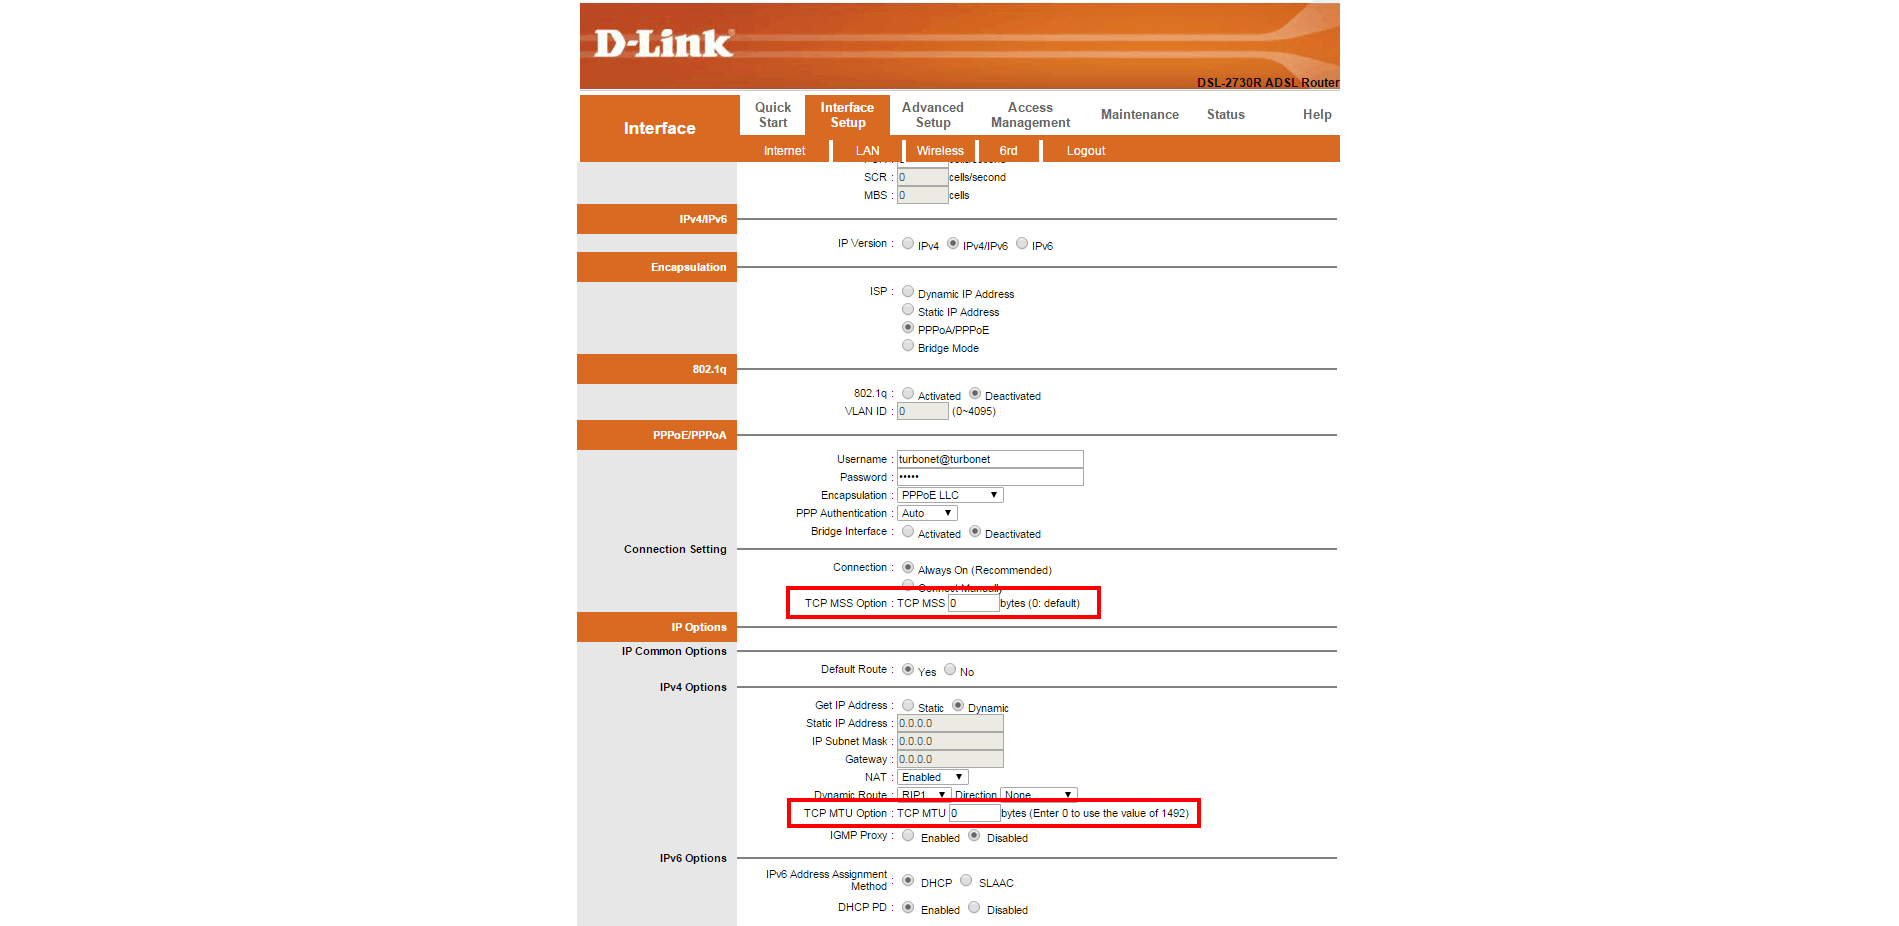 How to find the proper MTU size for my network